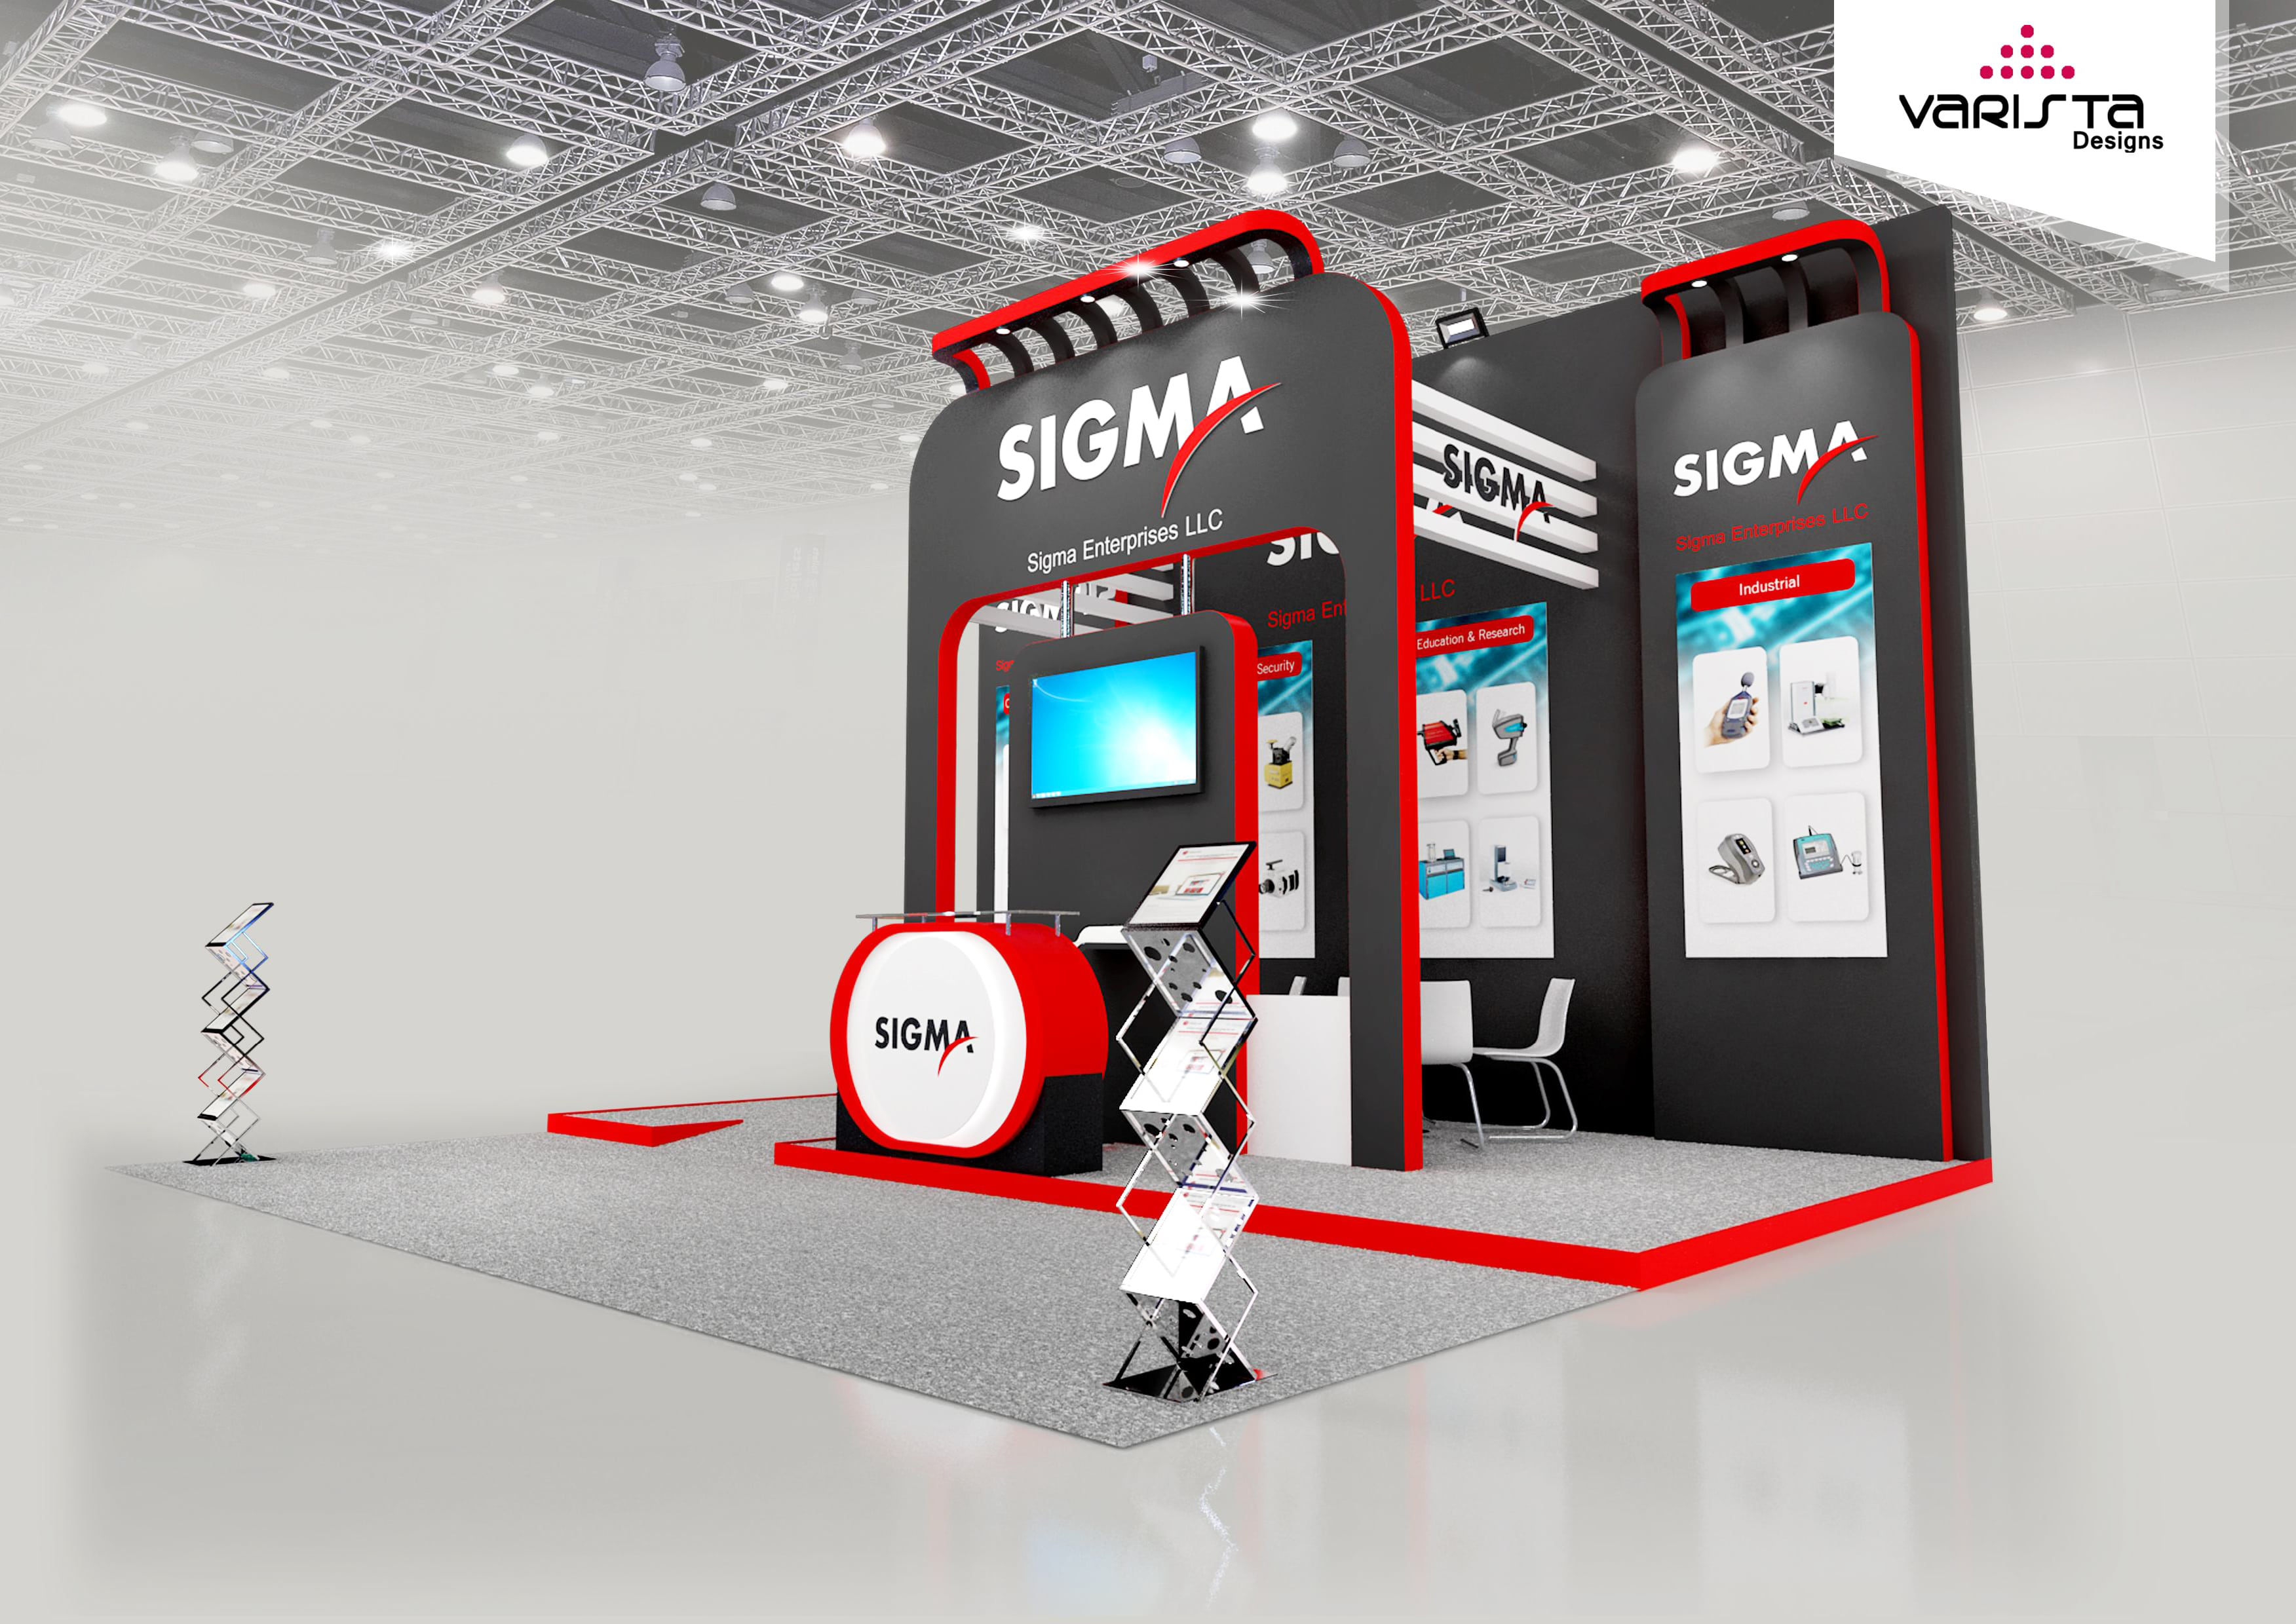 Exhibition Stand Proposal : Get free designs proposal for exhibition booth interior design